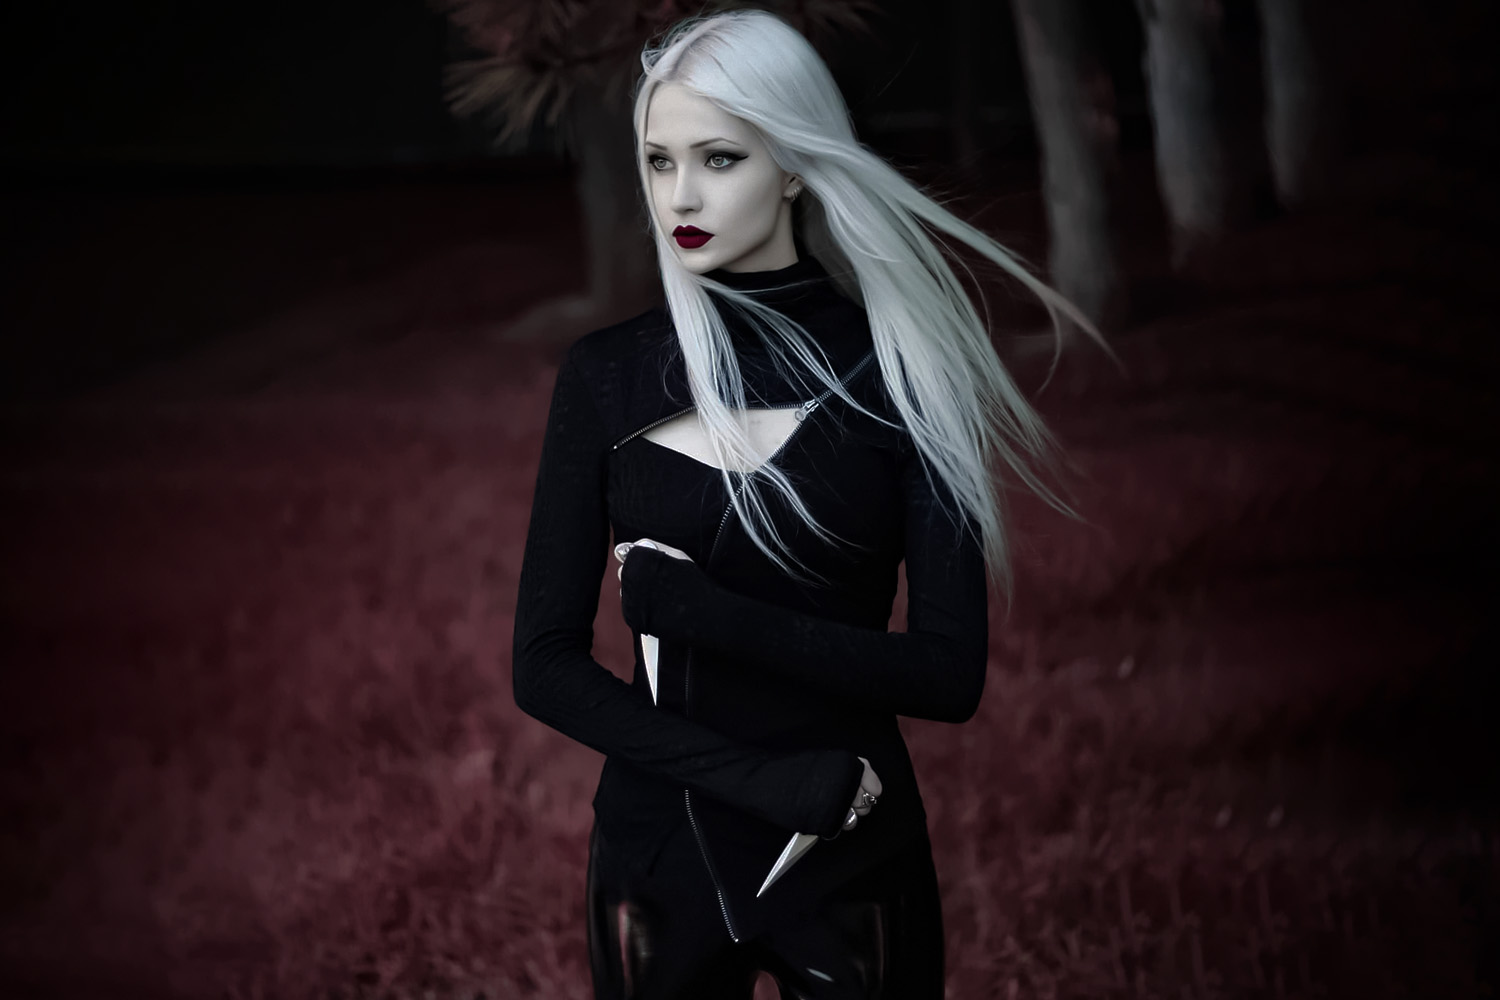 gothic woman with long blond hair in the forest